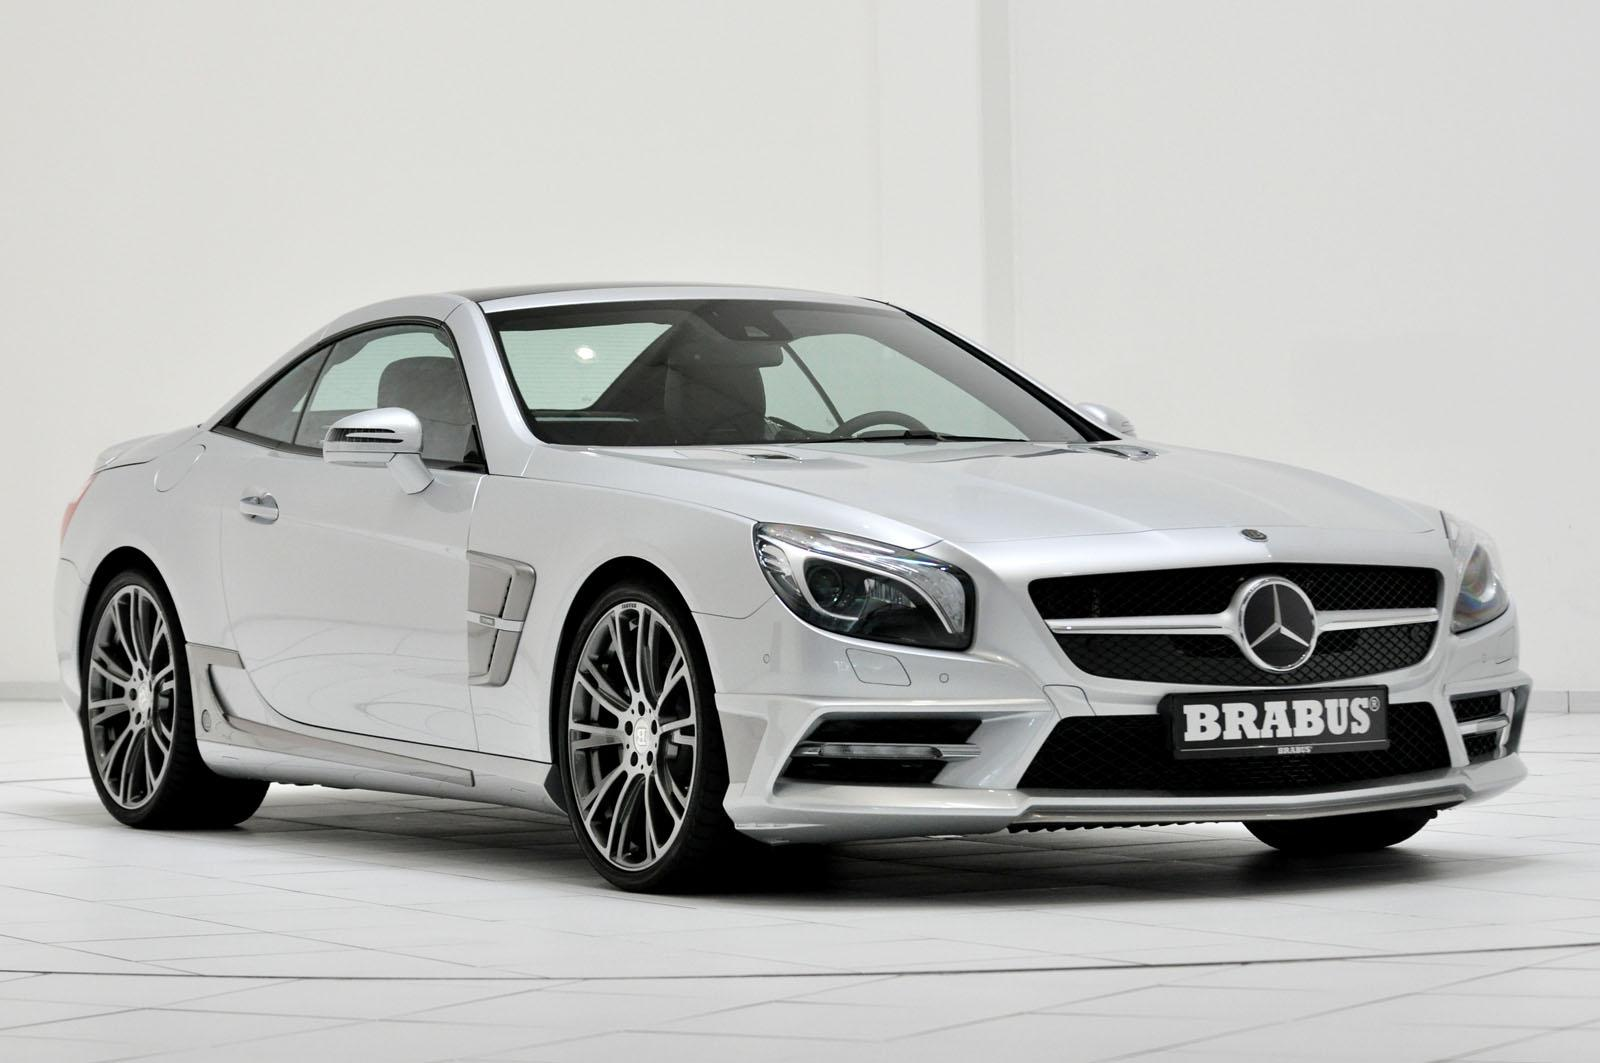 brabus tunes 2013 mercedes sl r231 autoevolution. Black Bedroom Furniture Sets. Home Design Ideas